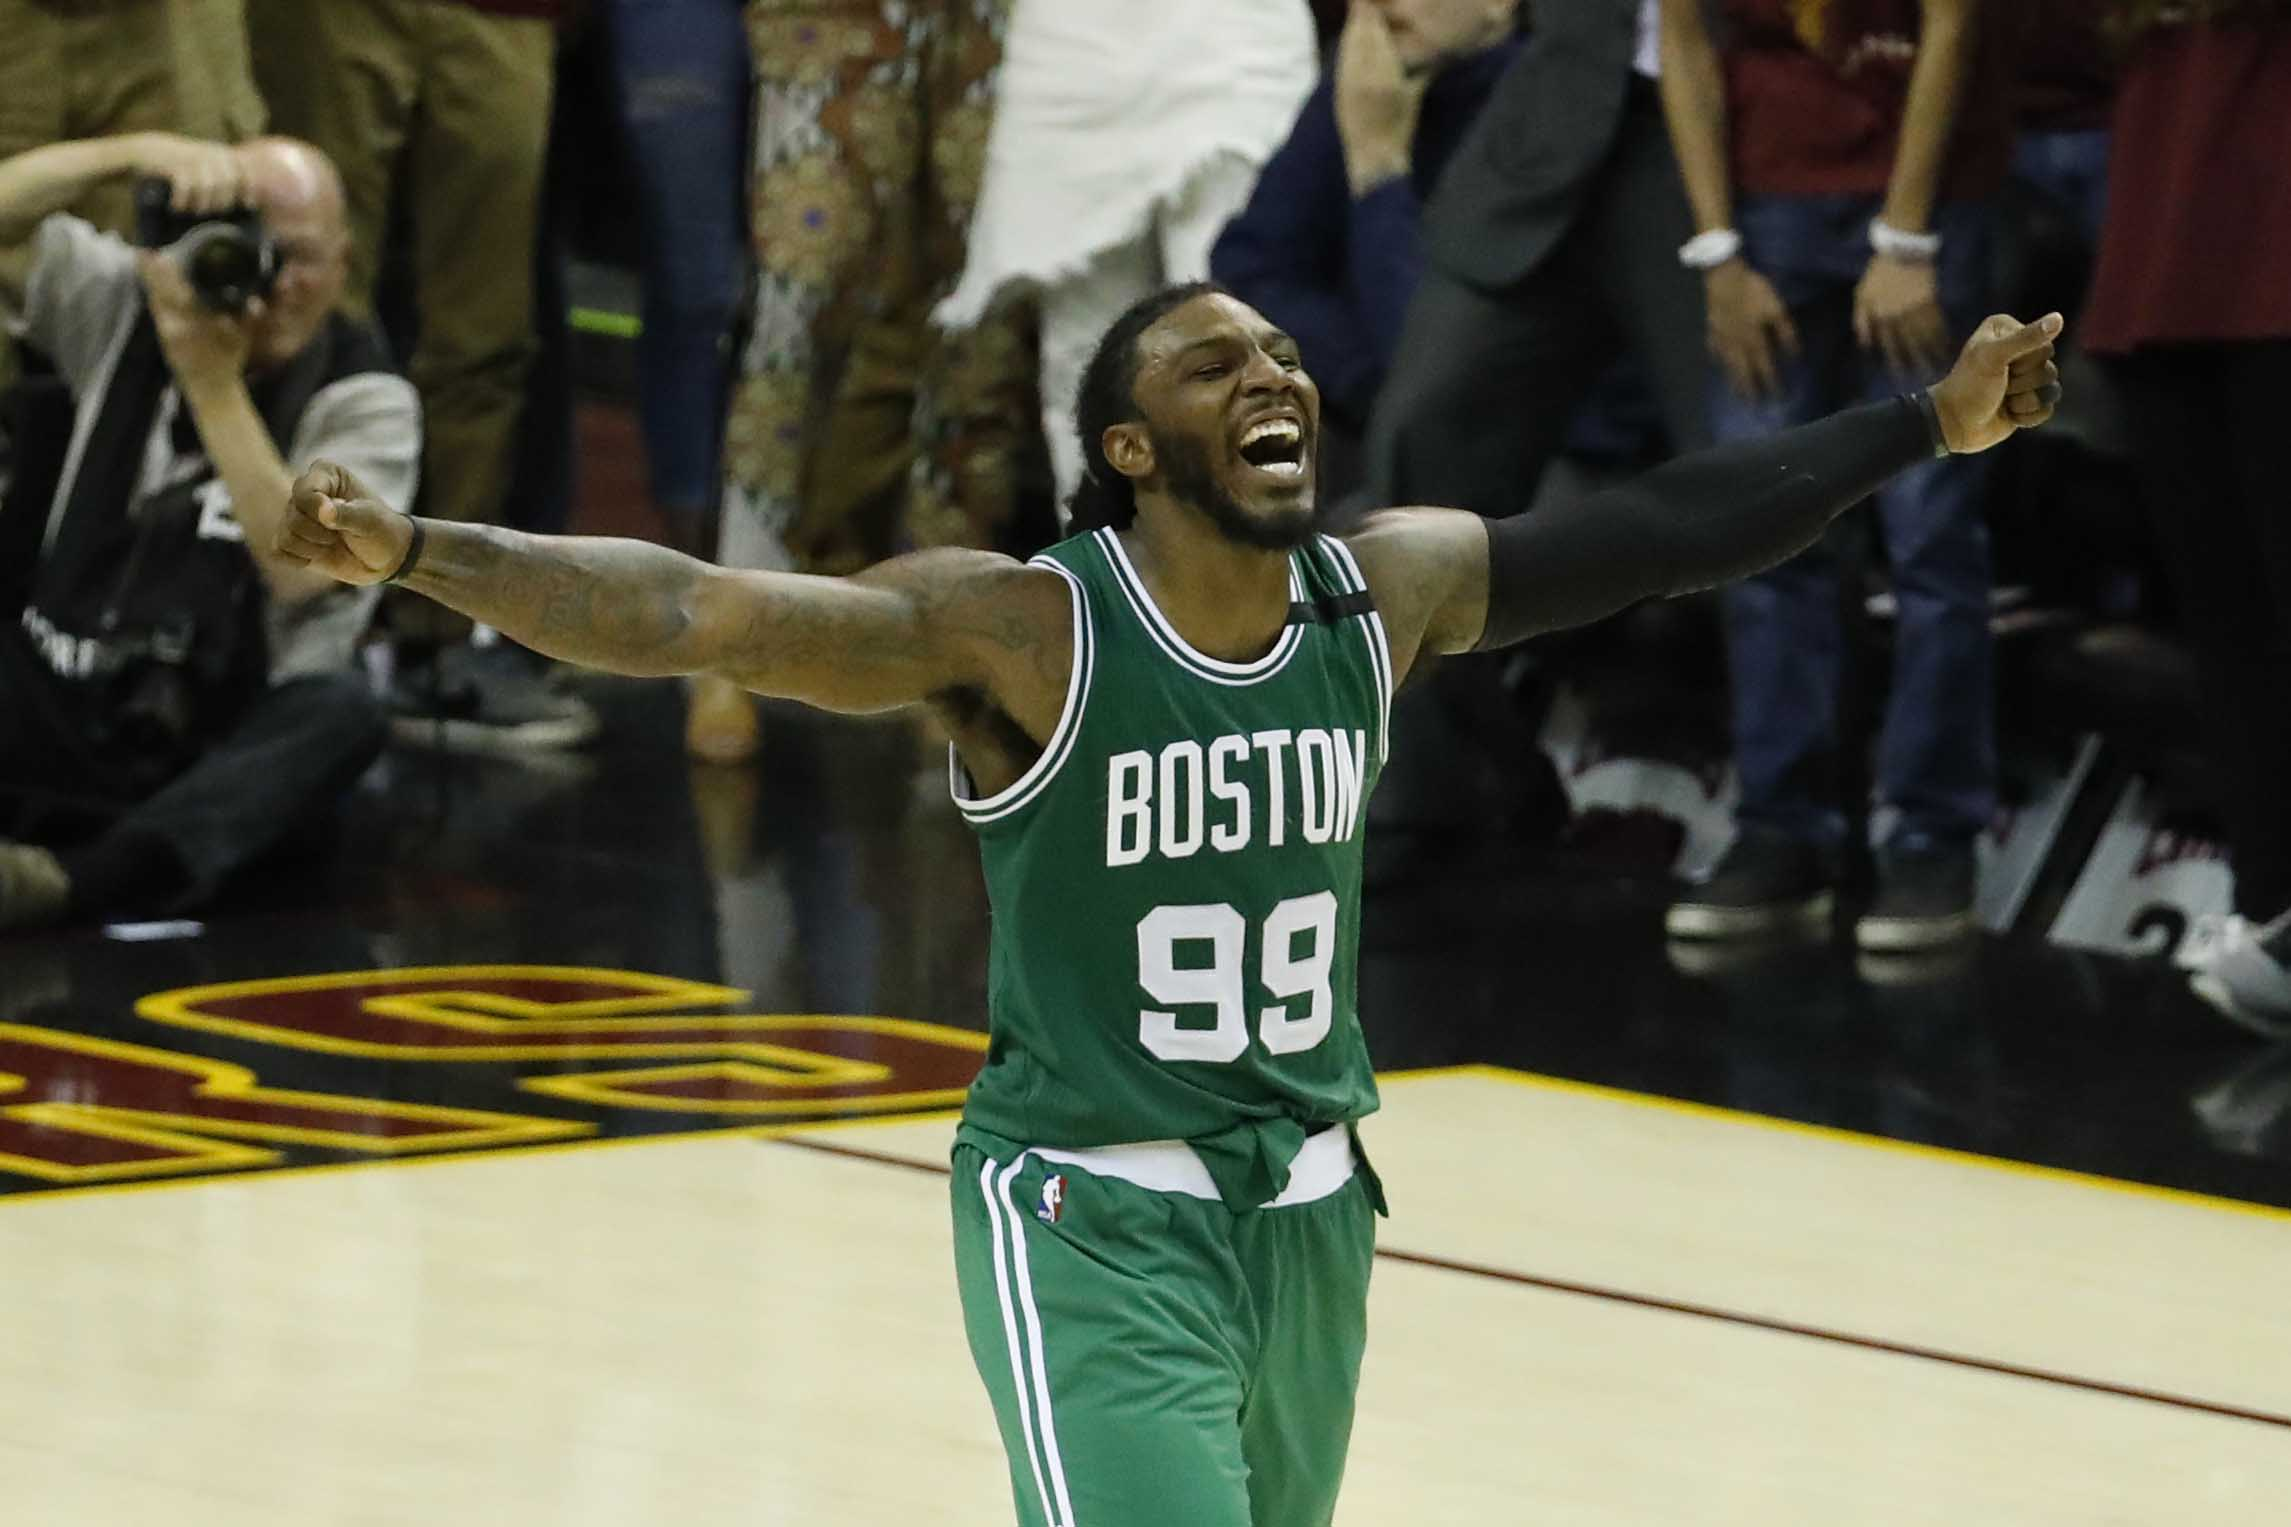 10069161-nba-playoffs-boston-celtics-at-cleveland-cavaliers-1